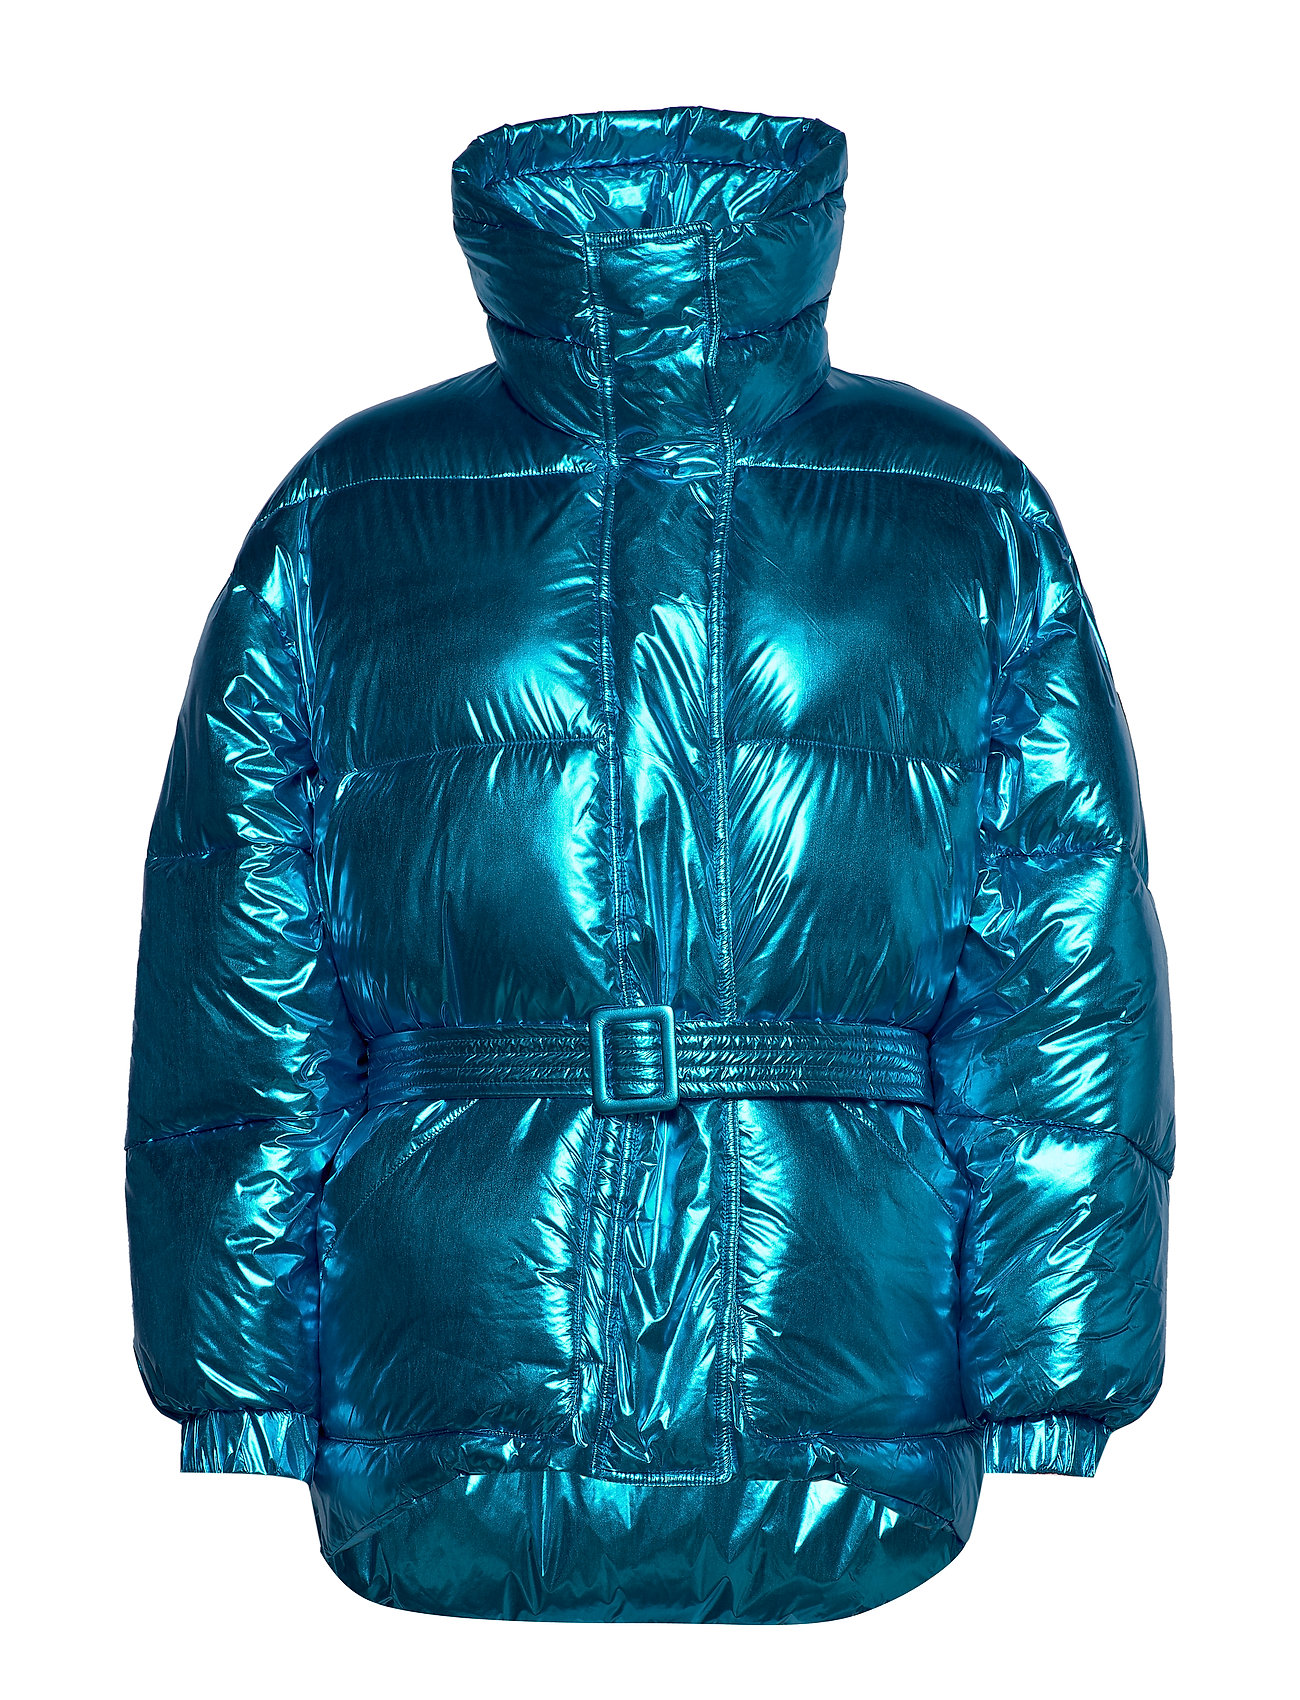 Replay Jacket - LIGHT BLUE METALIZED